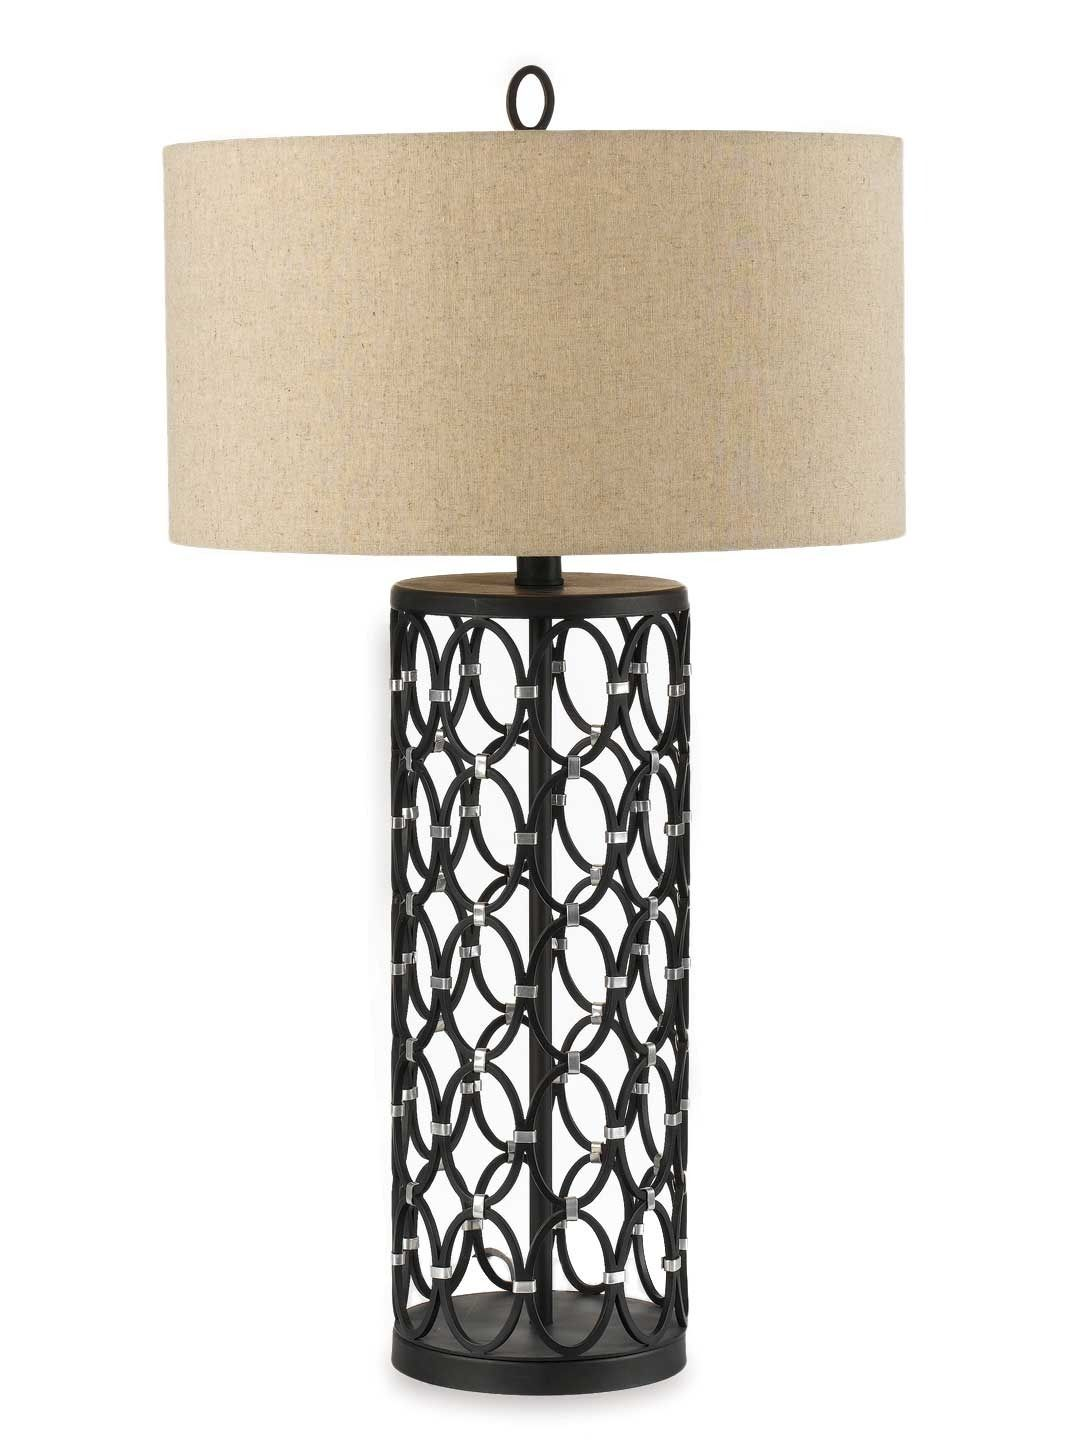 Candice olson cosmo table lamp future apt pinterest products candice olson cosmo table lamp aloadofball Gallery